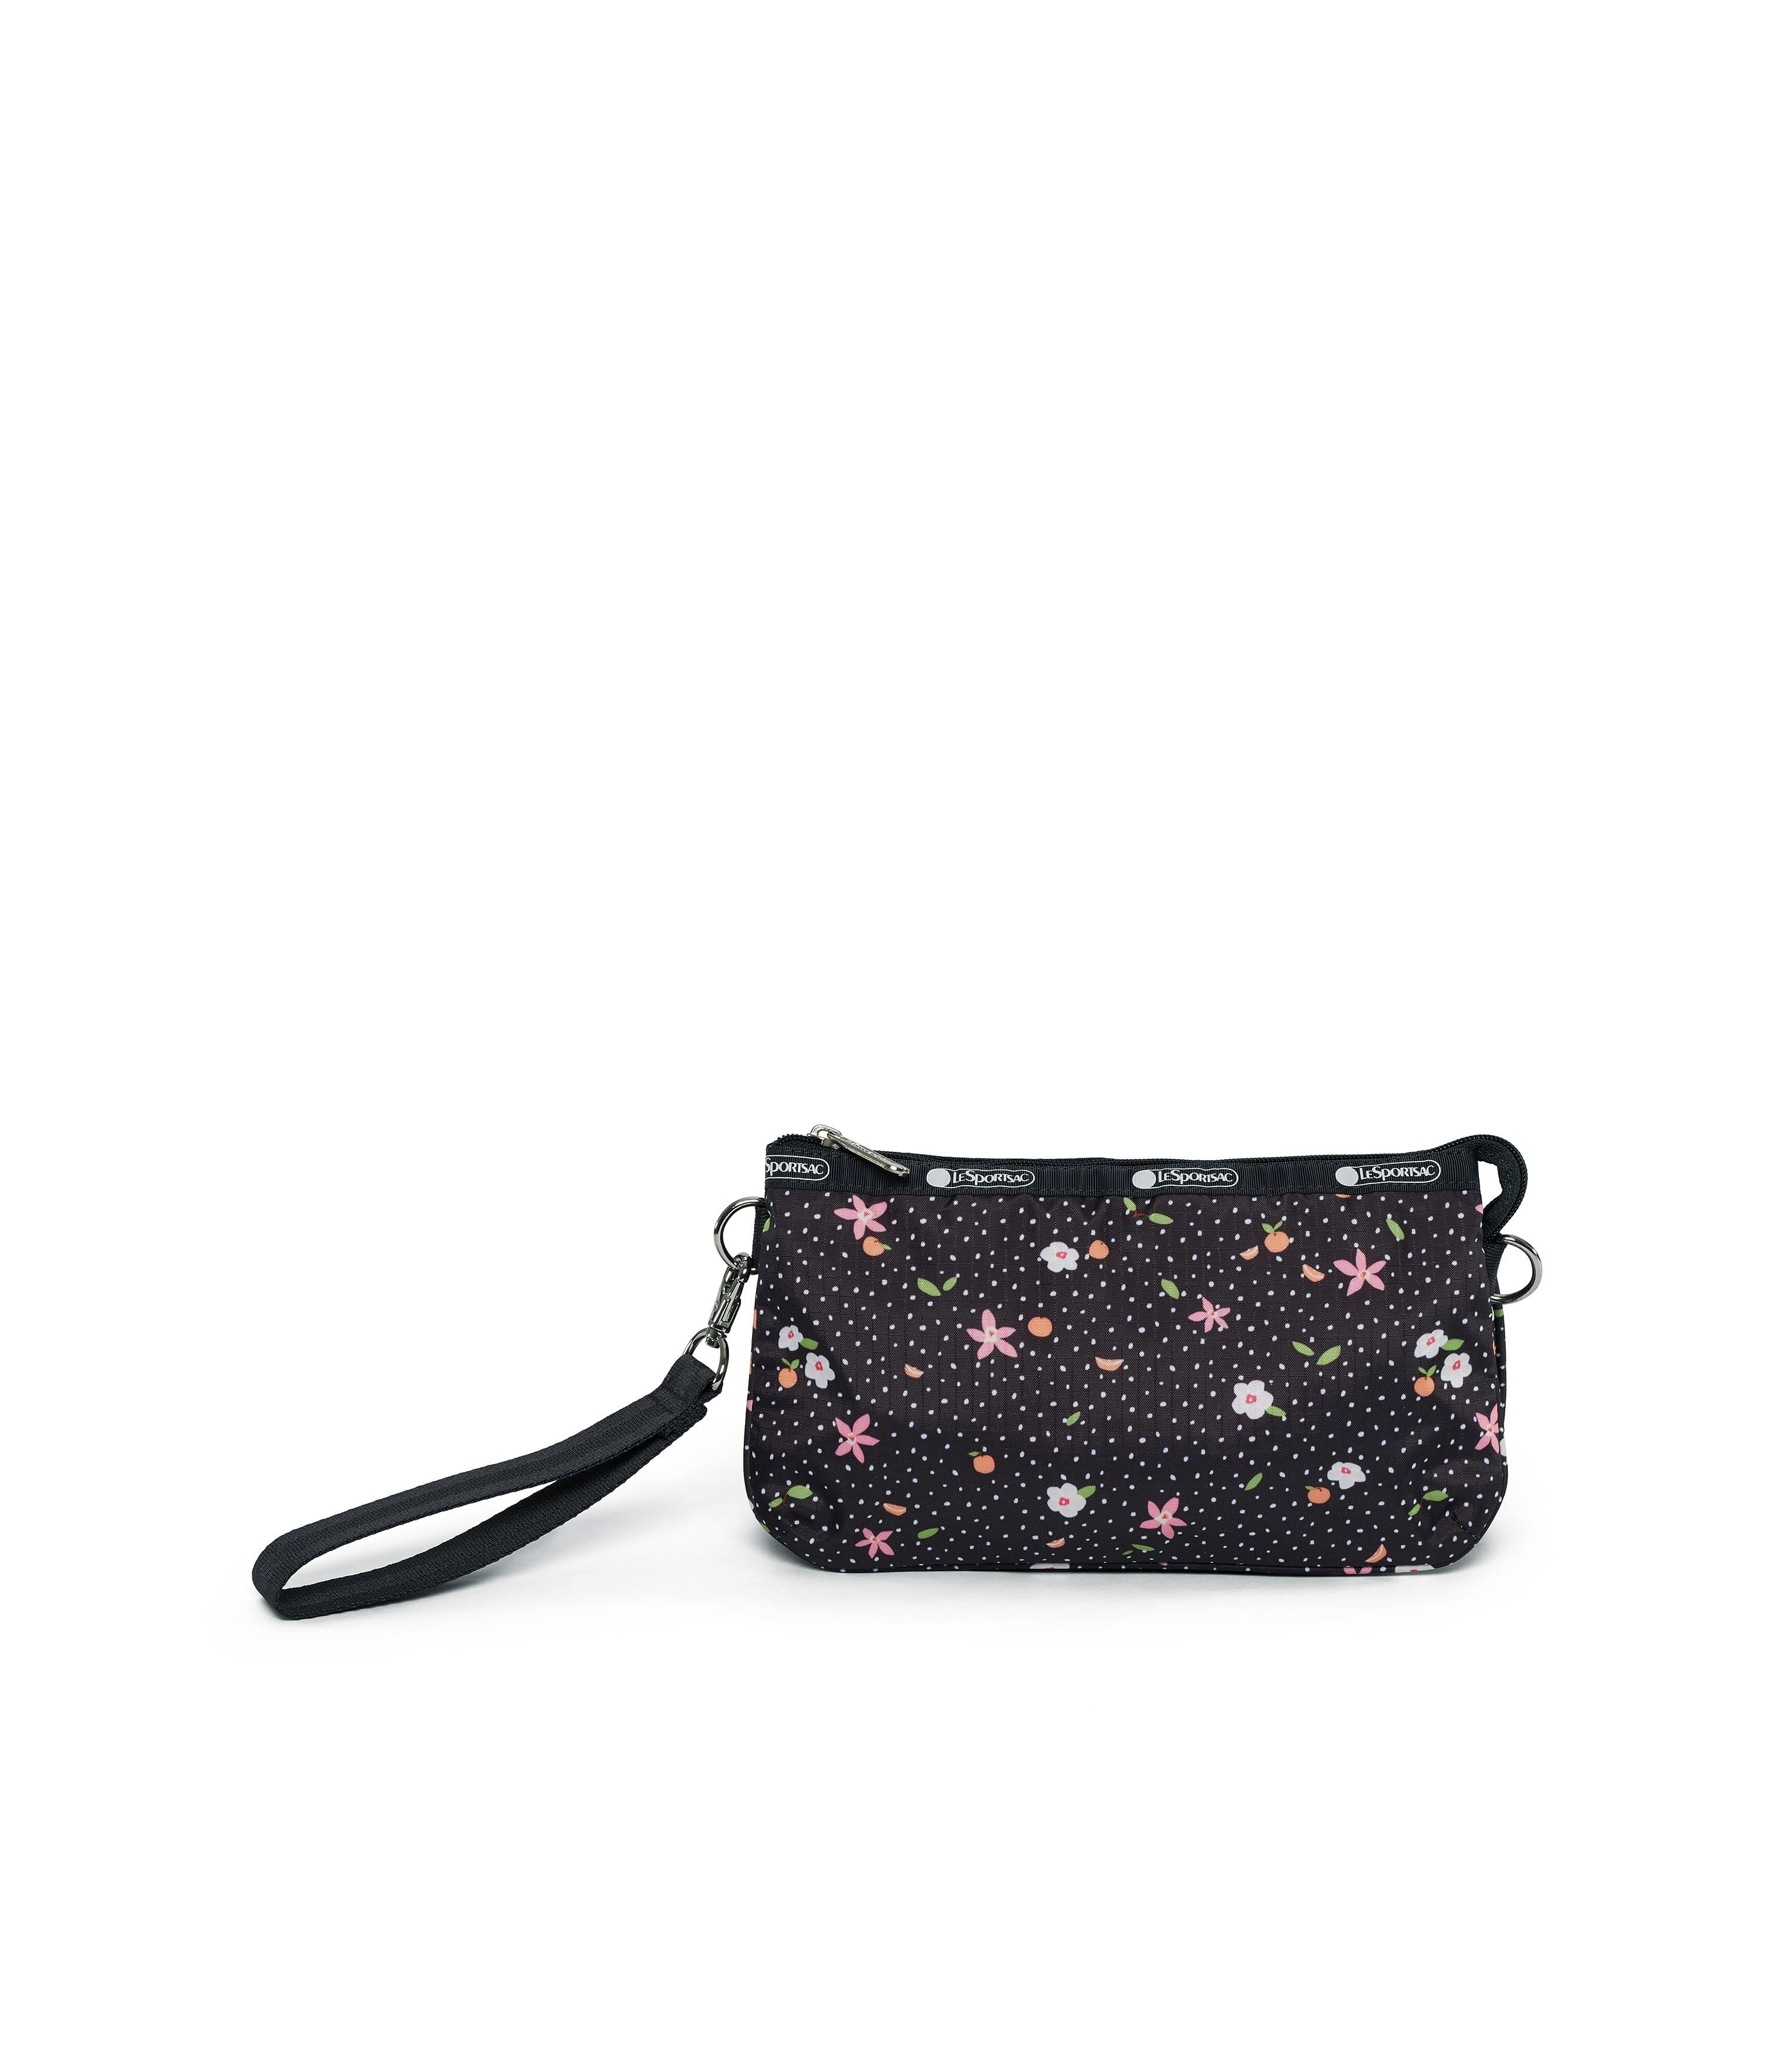 LeSportsac - Medium Koko Crossbody - Handbags - Fruity Petals print